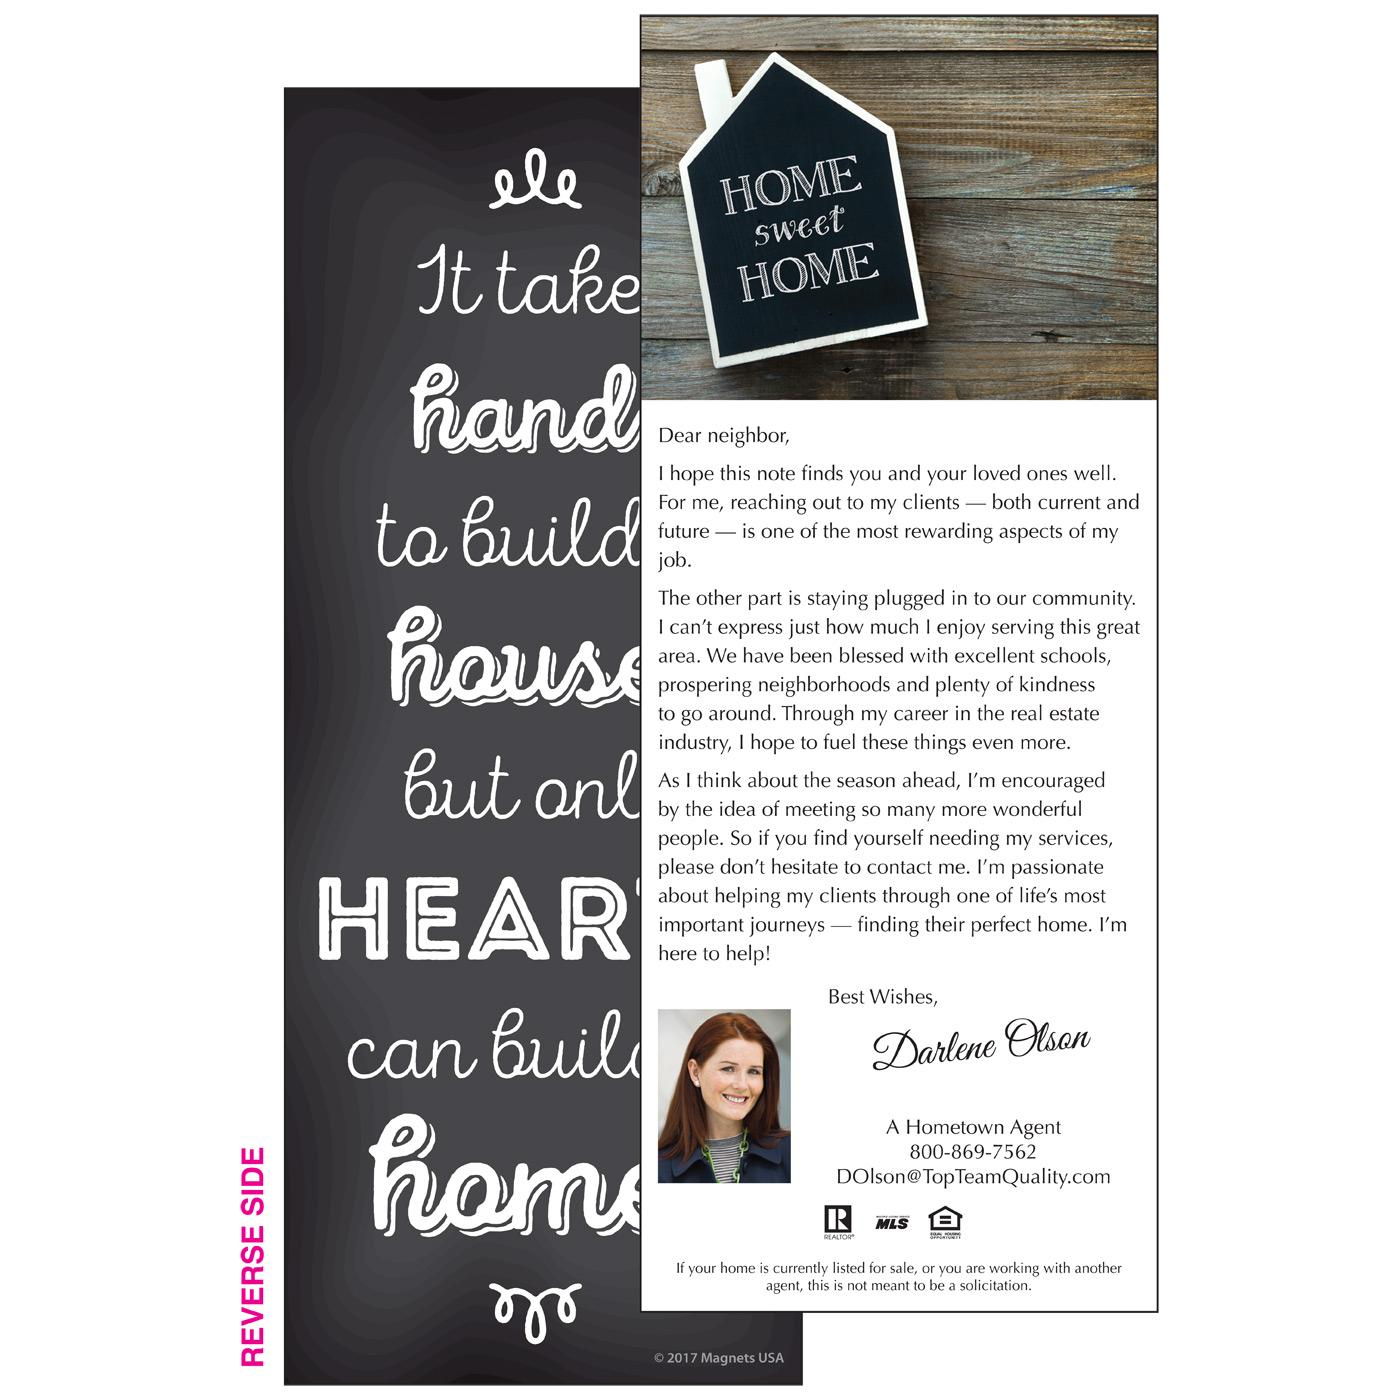 personalized insert with message